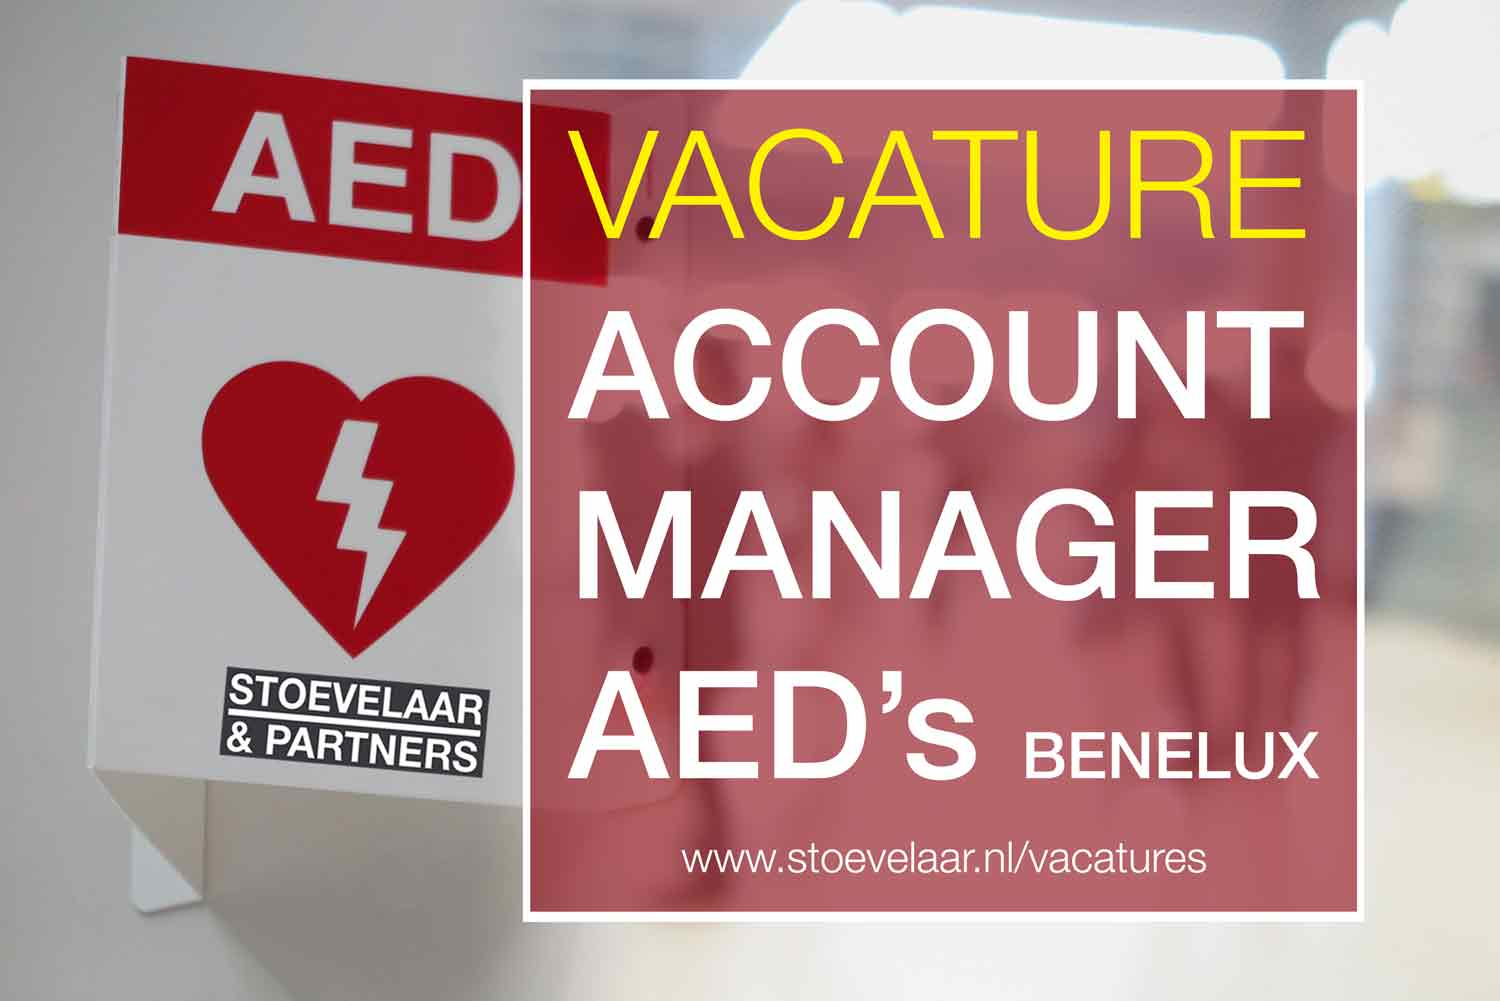 vacature Account Manager AED Benelux